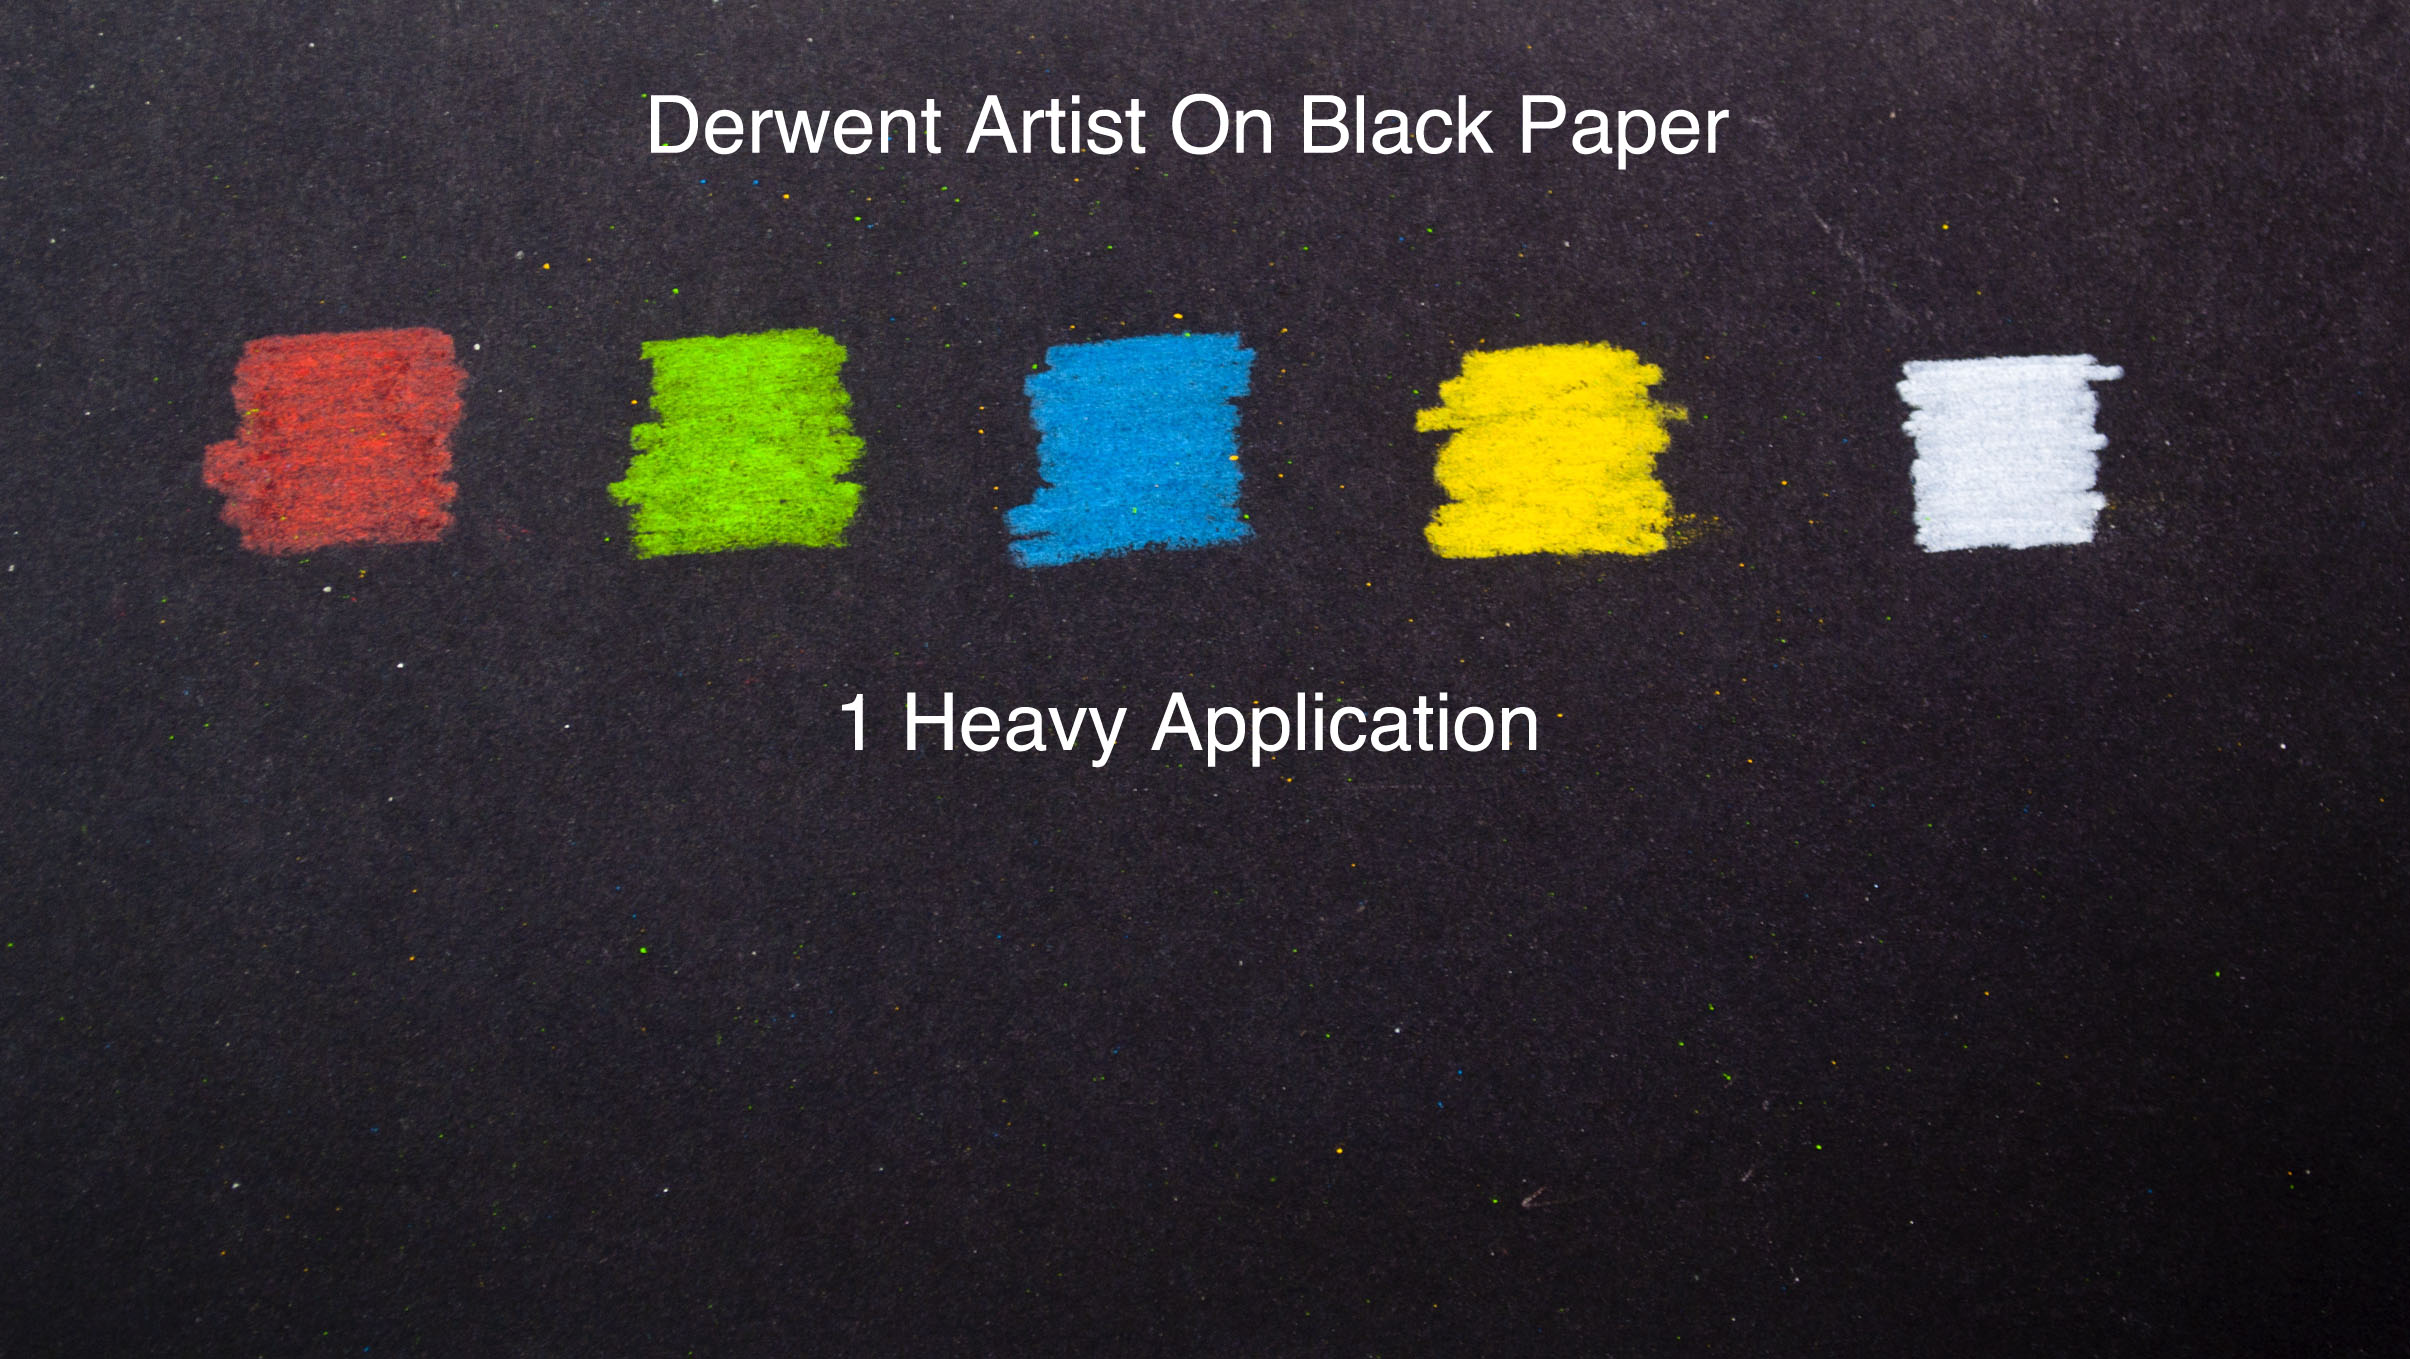 Derwent Artist on Black Paper copy.jpg